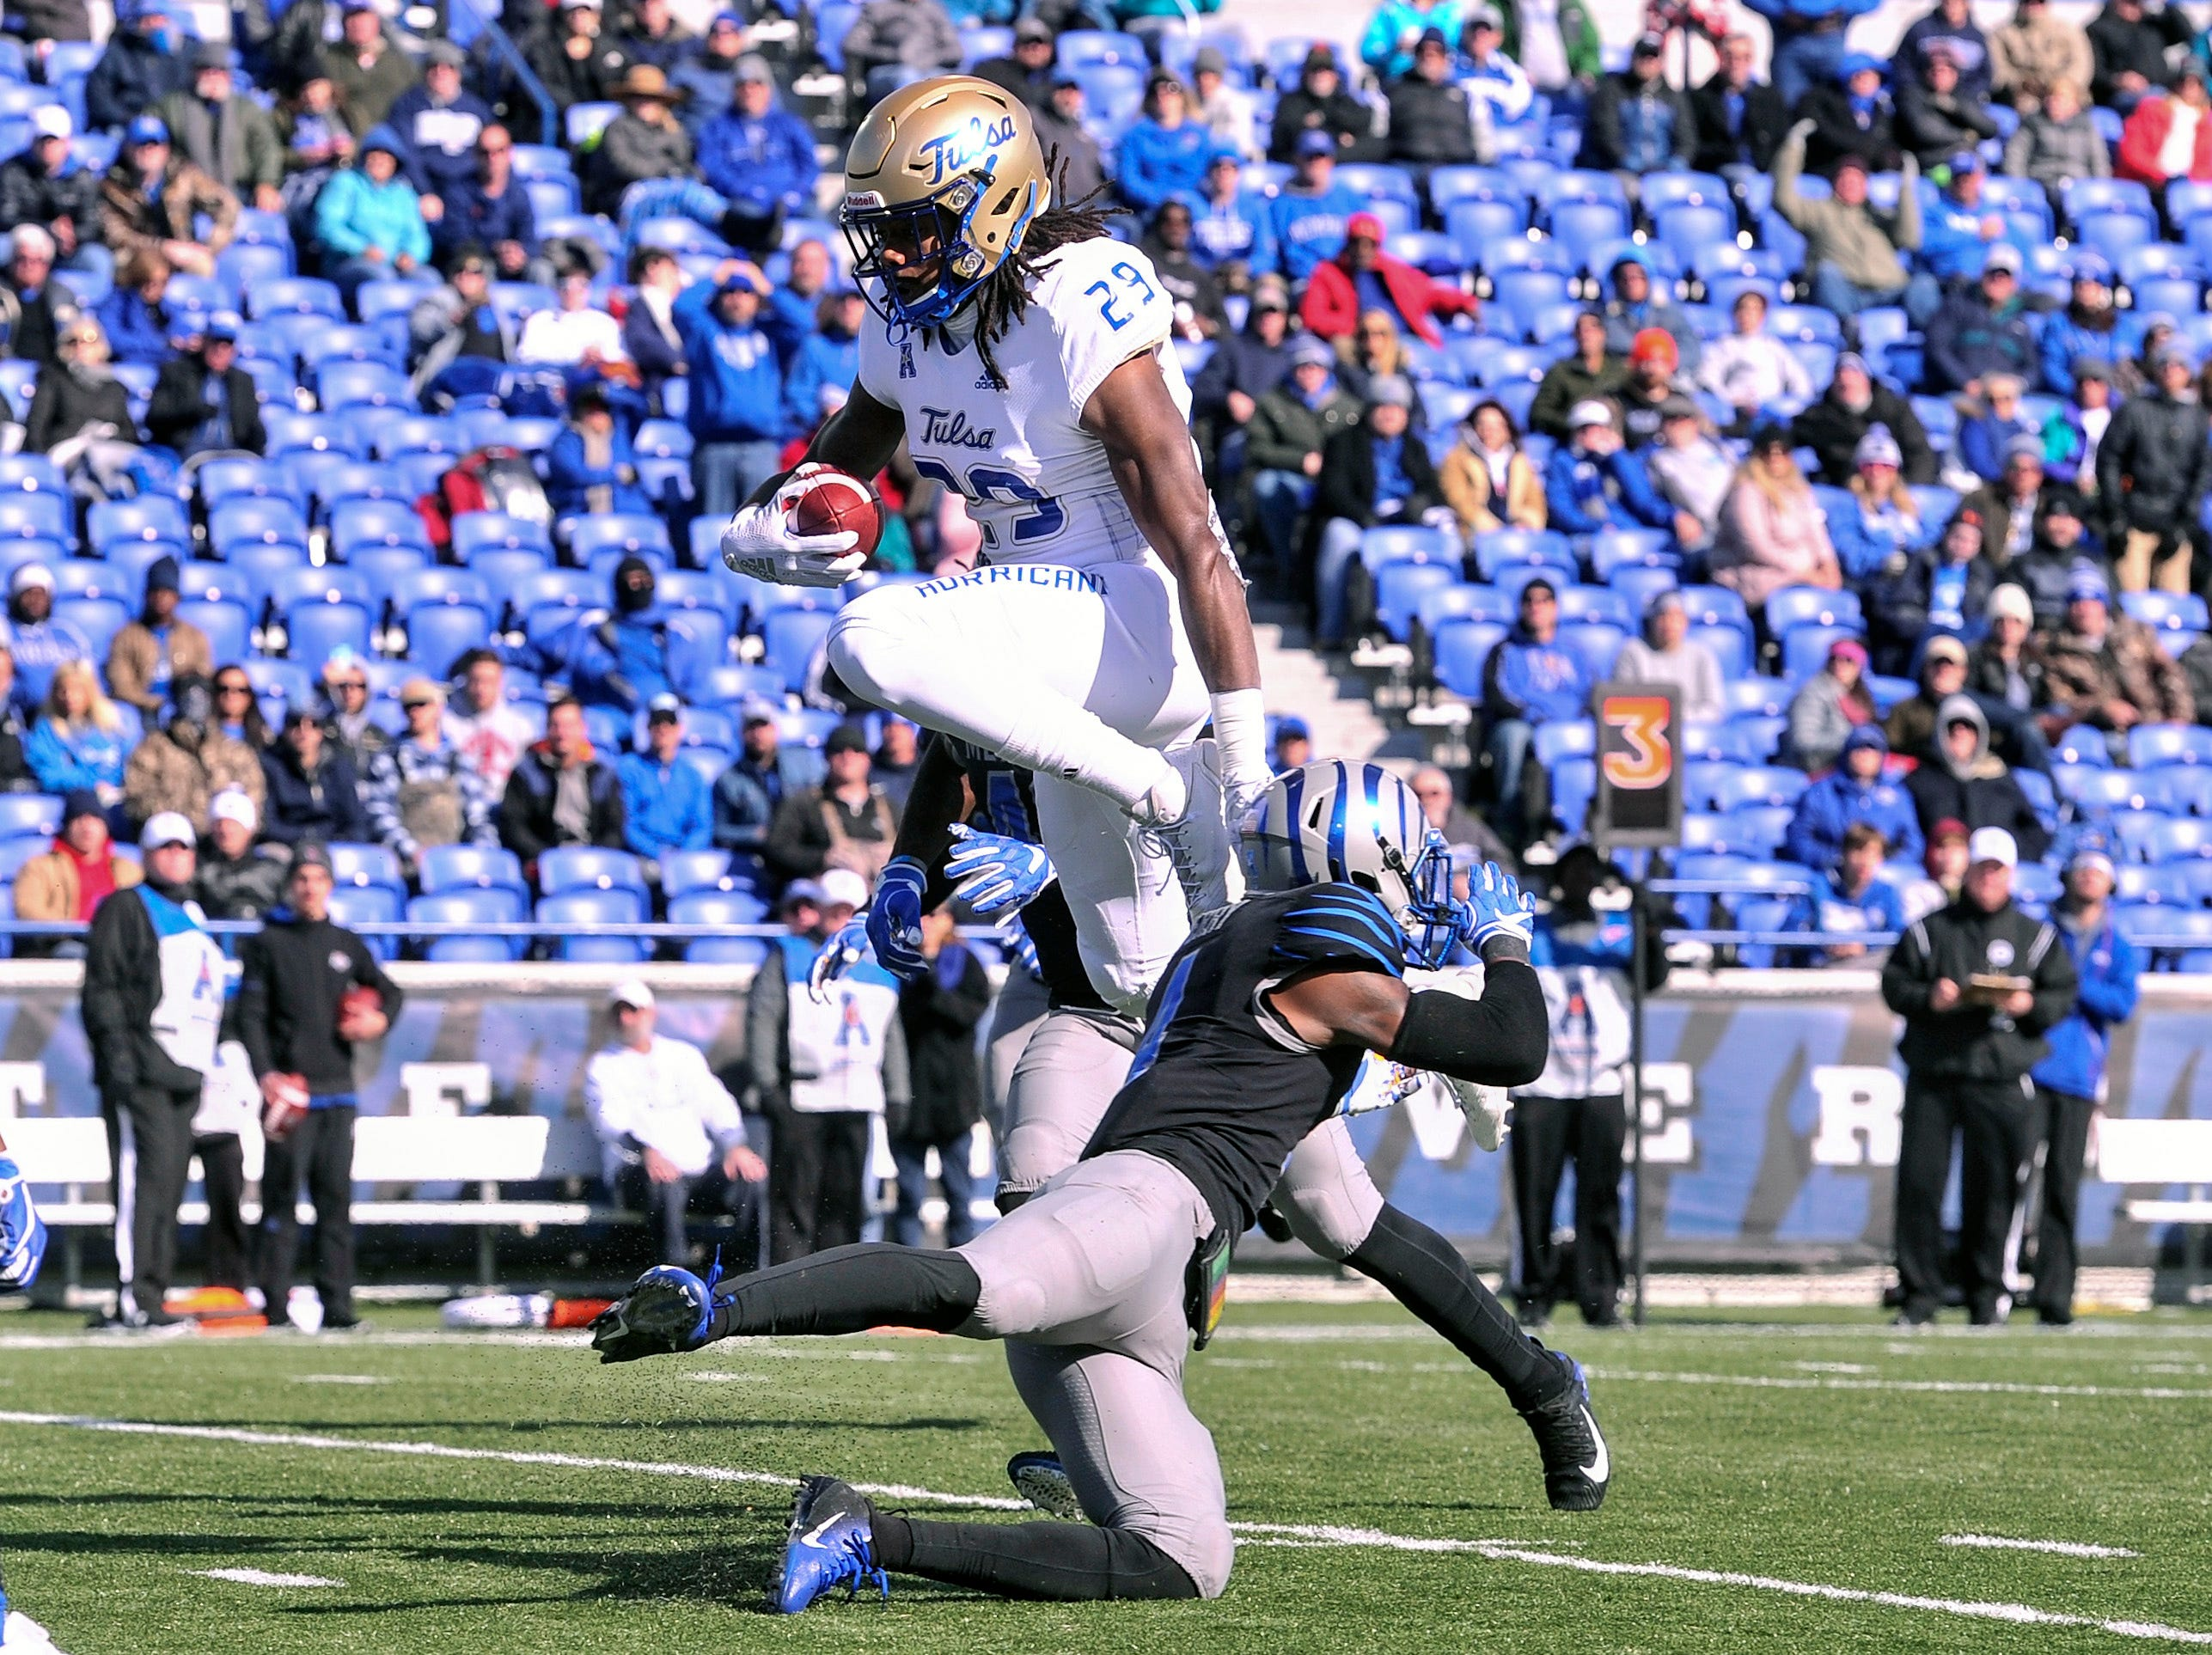 Tulsa Golden Hurricane wide receiver Justin Hobbs (29) leaps over Memphis Tigers defensive back Josh Perry (4) during the second half at Liberty Bowl Memorial Stadium.